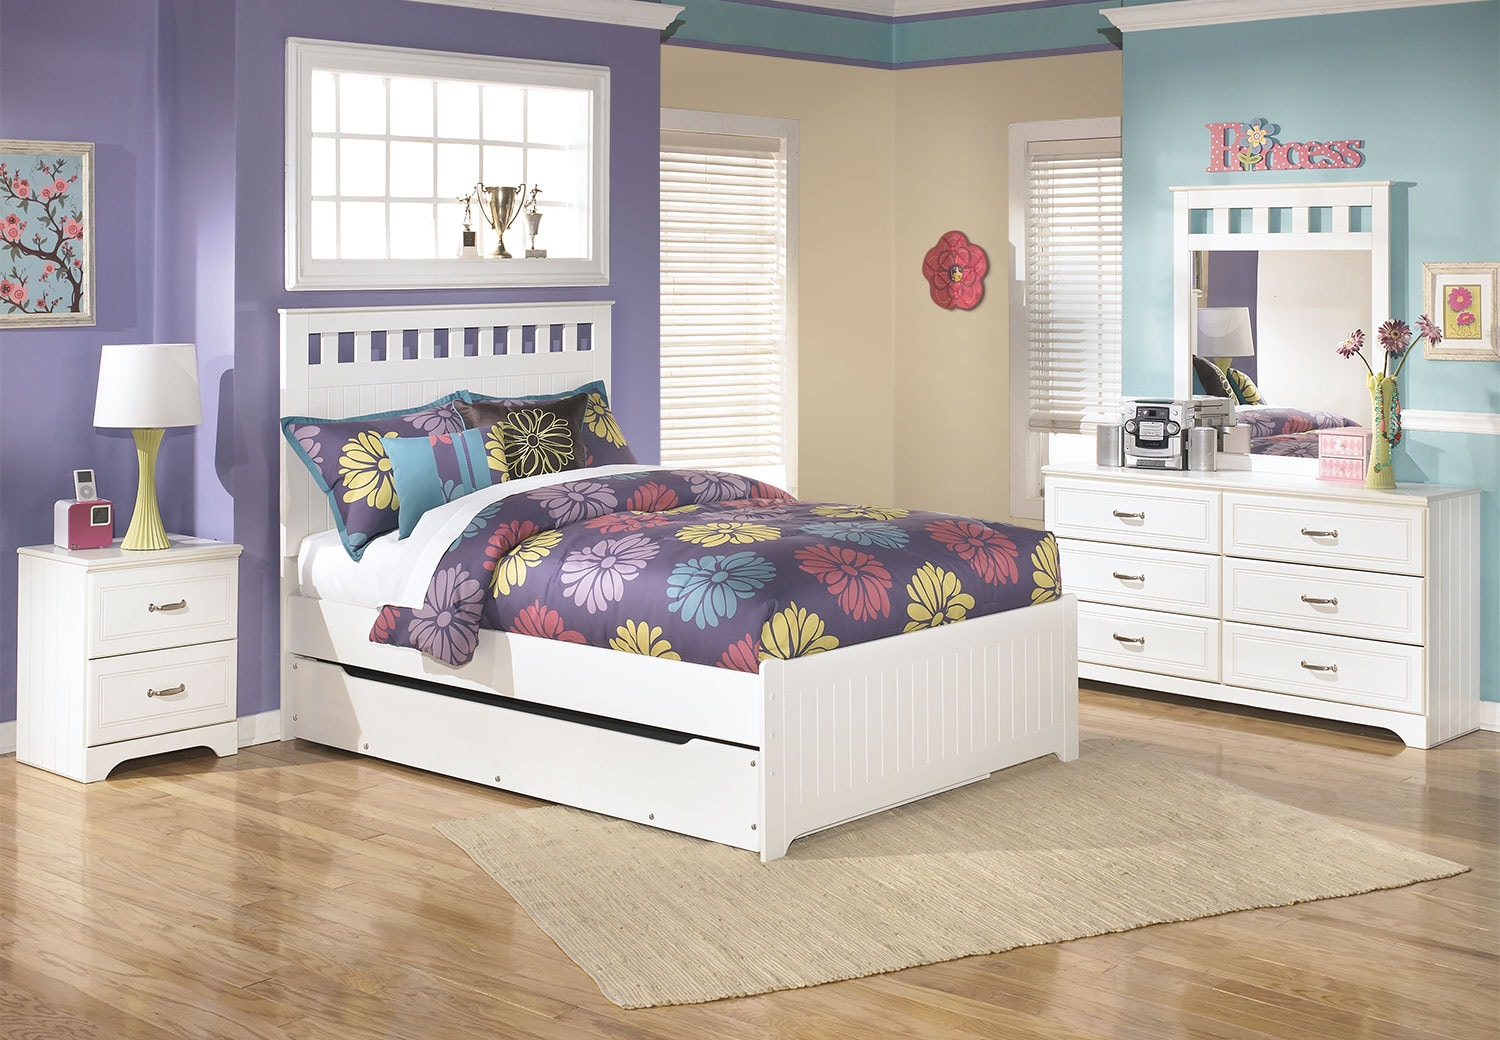 Kids Furniture - Lulu 6-Piece Full Panel Bed Package with Trundle